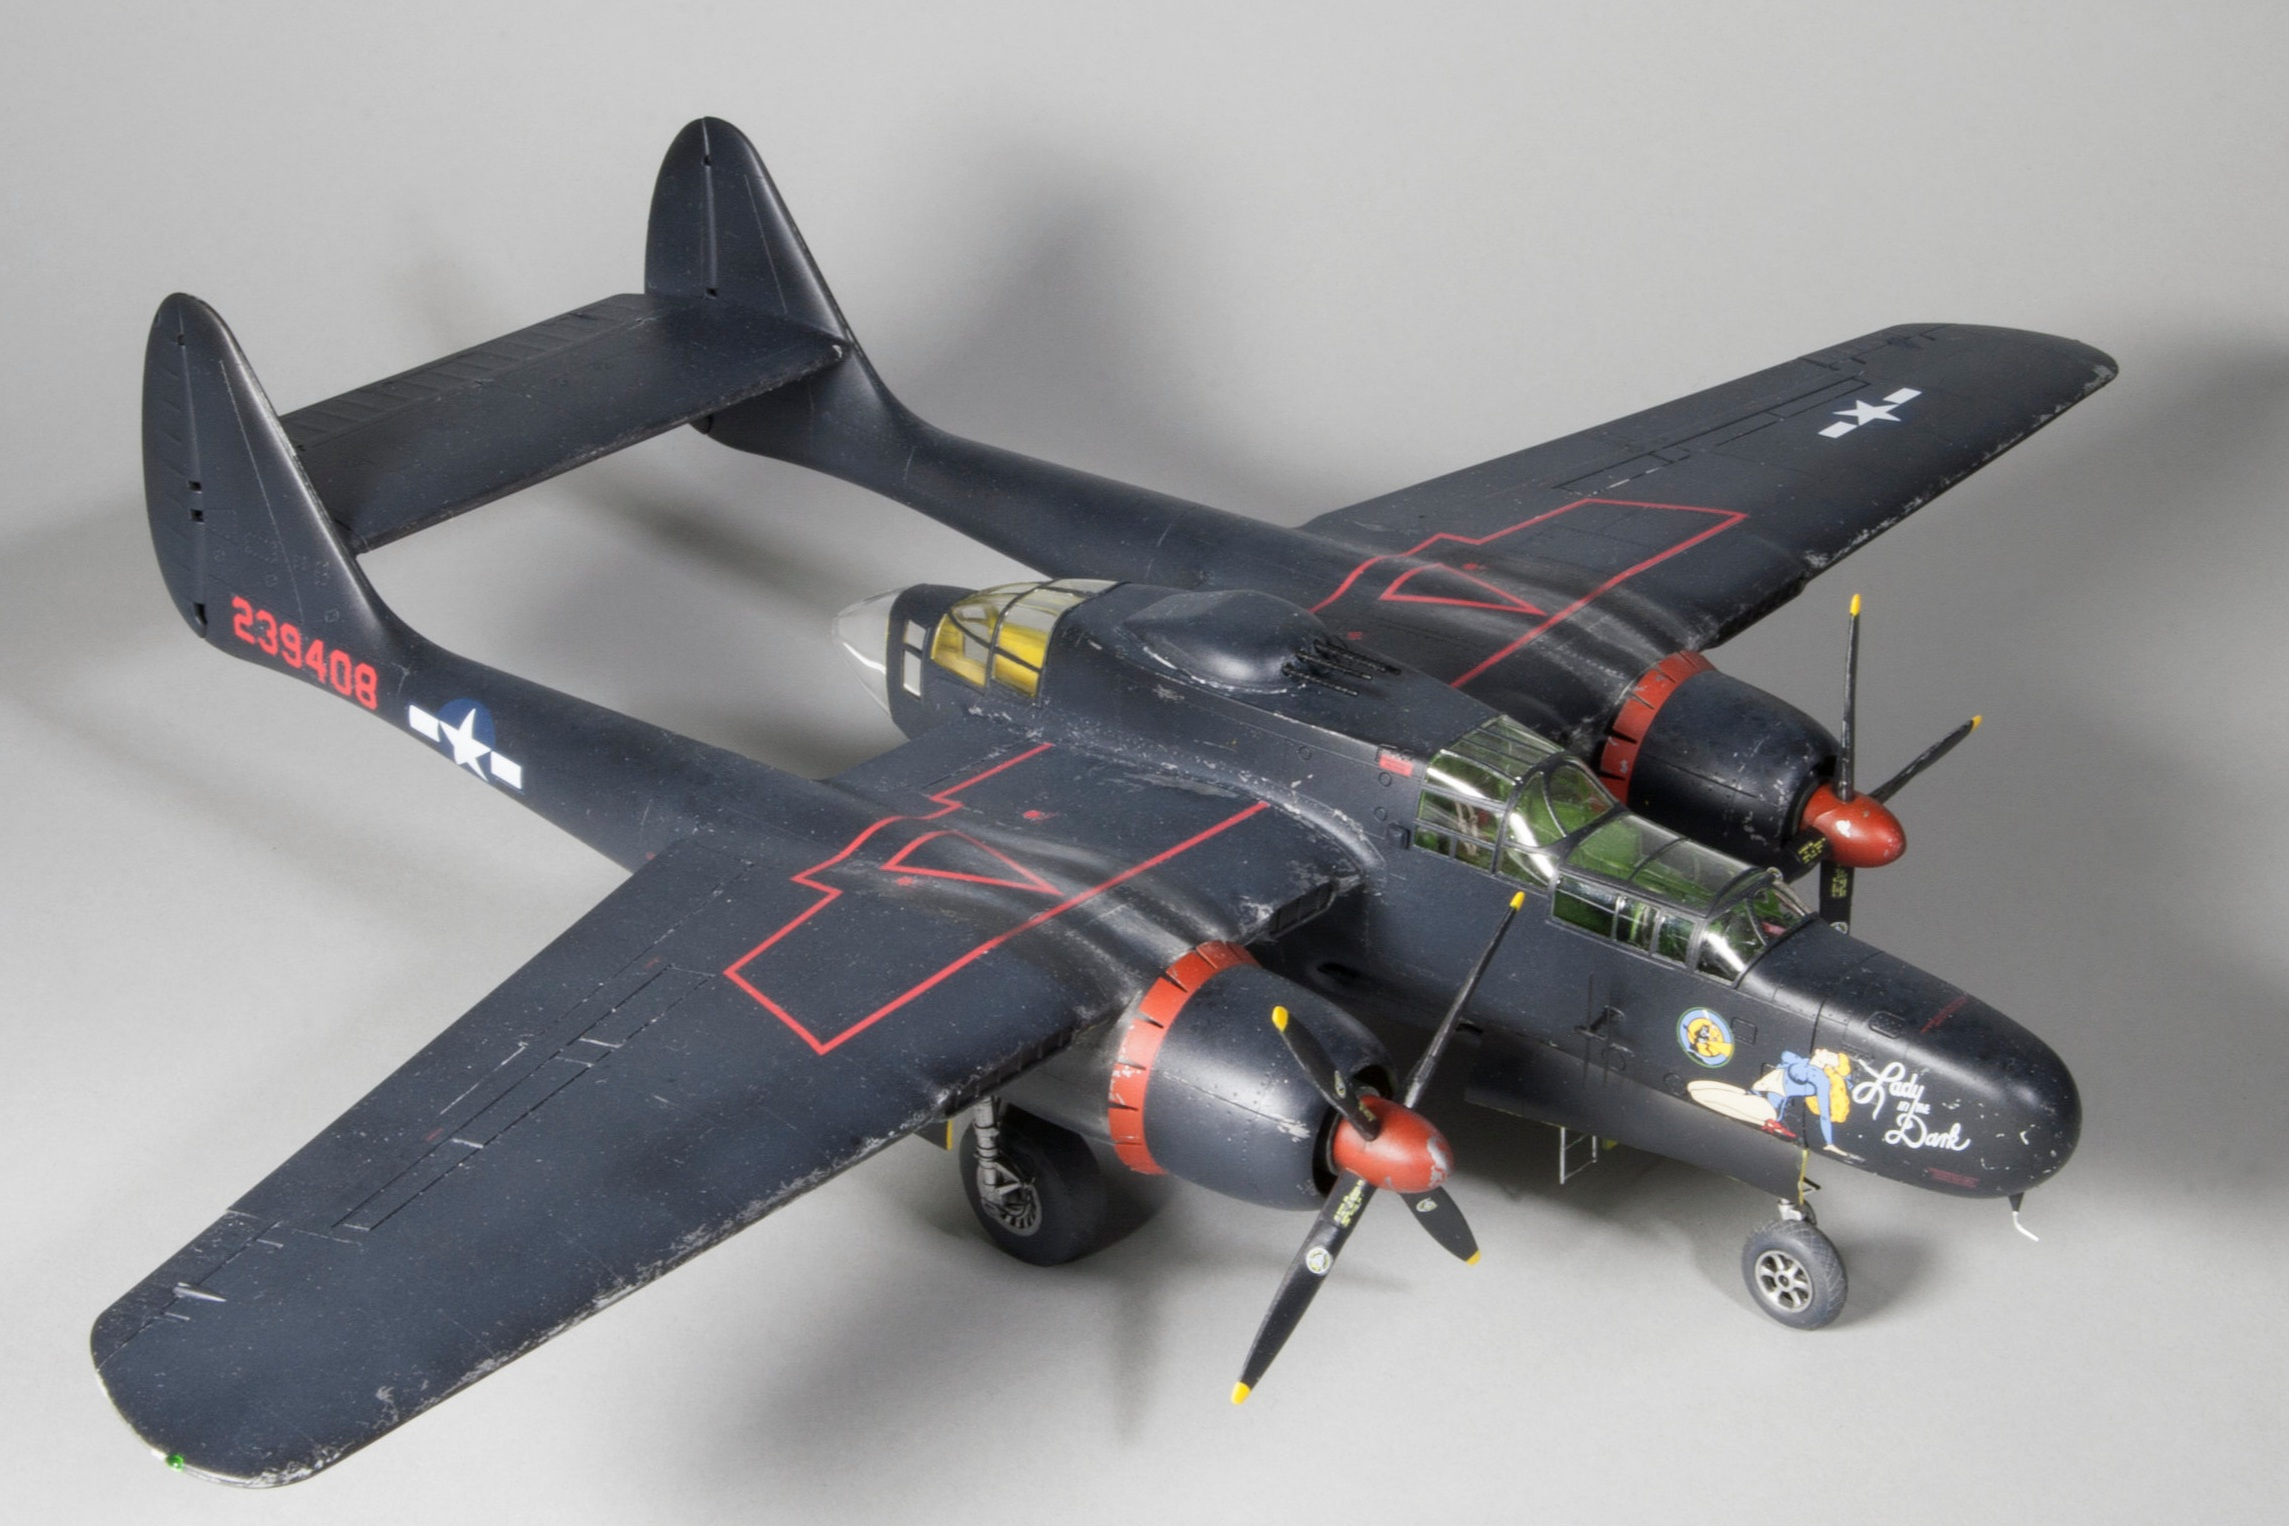 P-61 - Scale: 1/48Manufacturer: Need